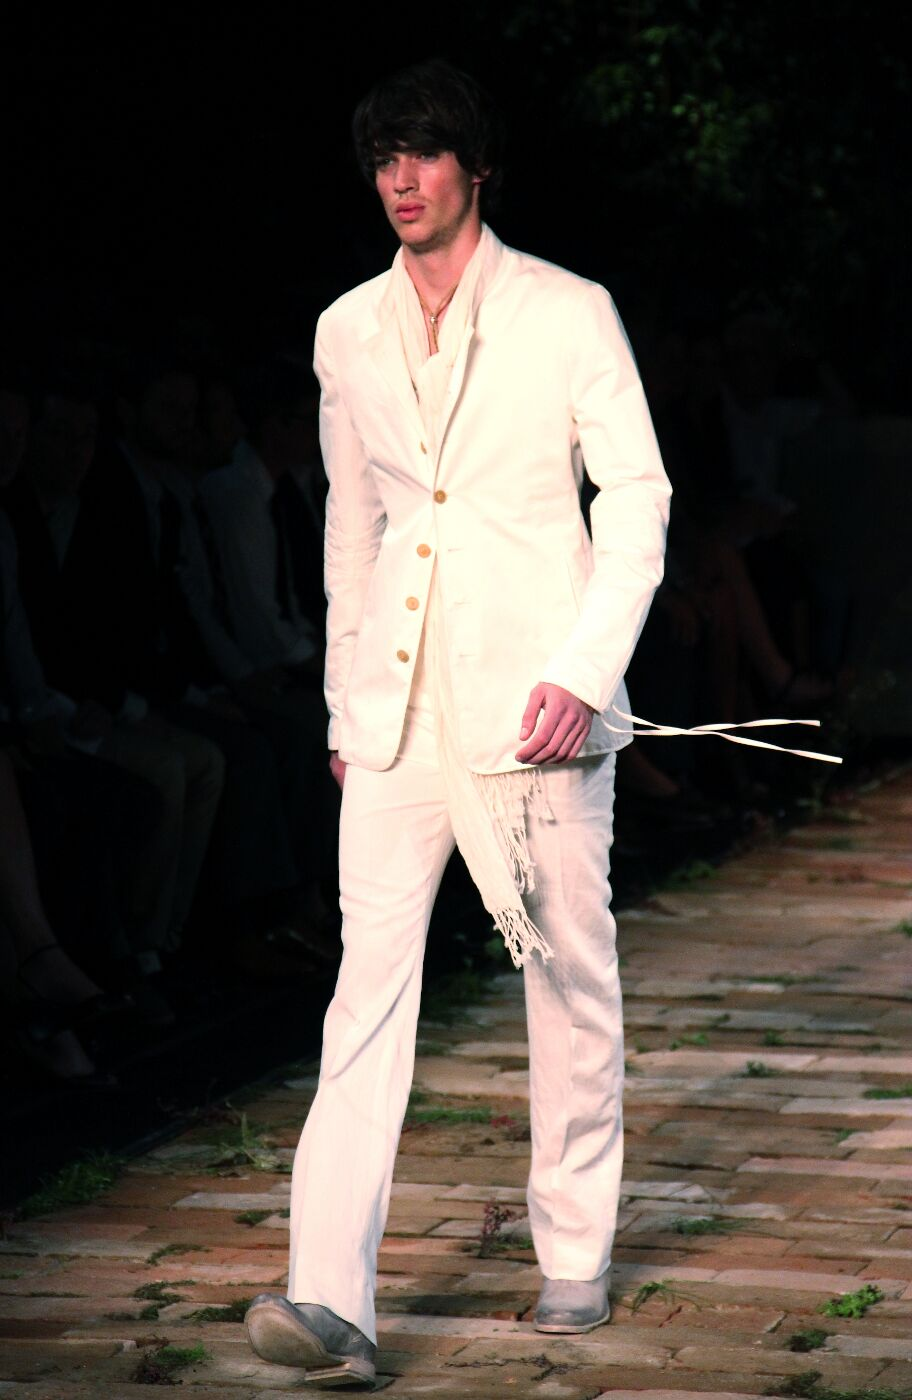 john-varvatos-spring-summer-2012-men-collection-milano-fashion-week-2012-john-varvatos-primavera-estate-catwalk-2012